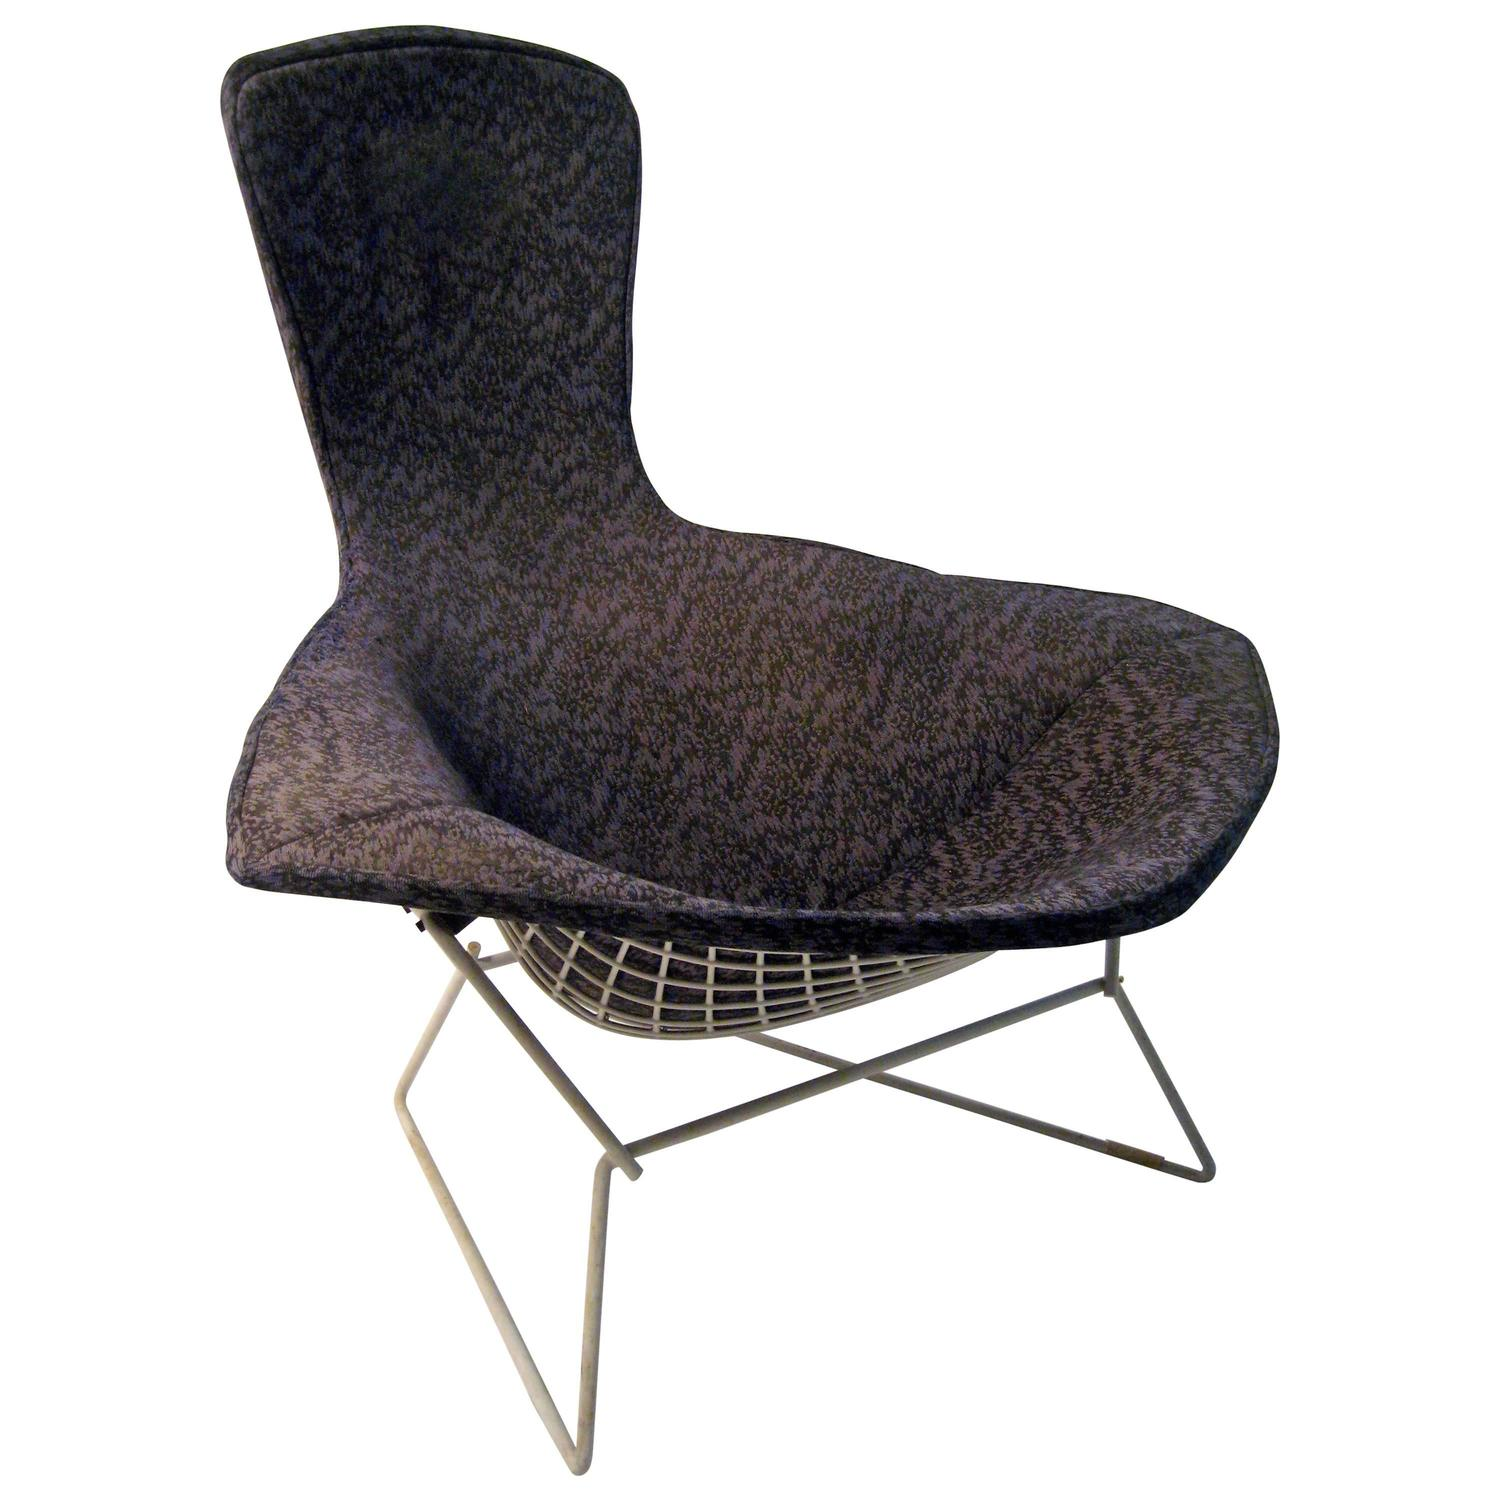 Harry Bertoia Chair Harry Bertoia Bird Chair For Sale At 1stdibs